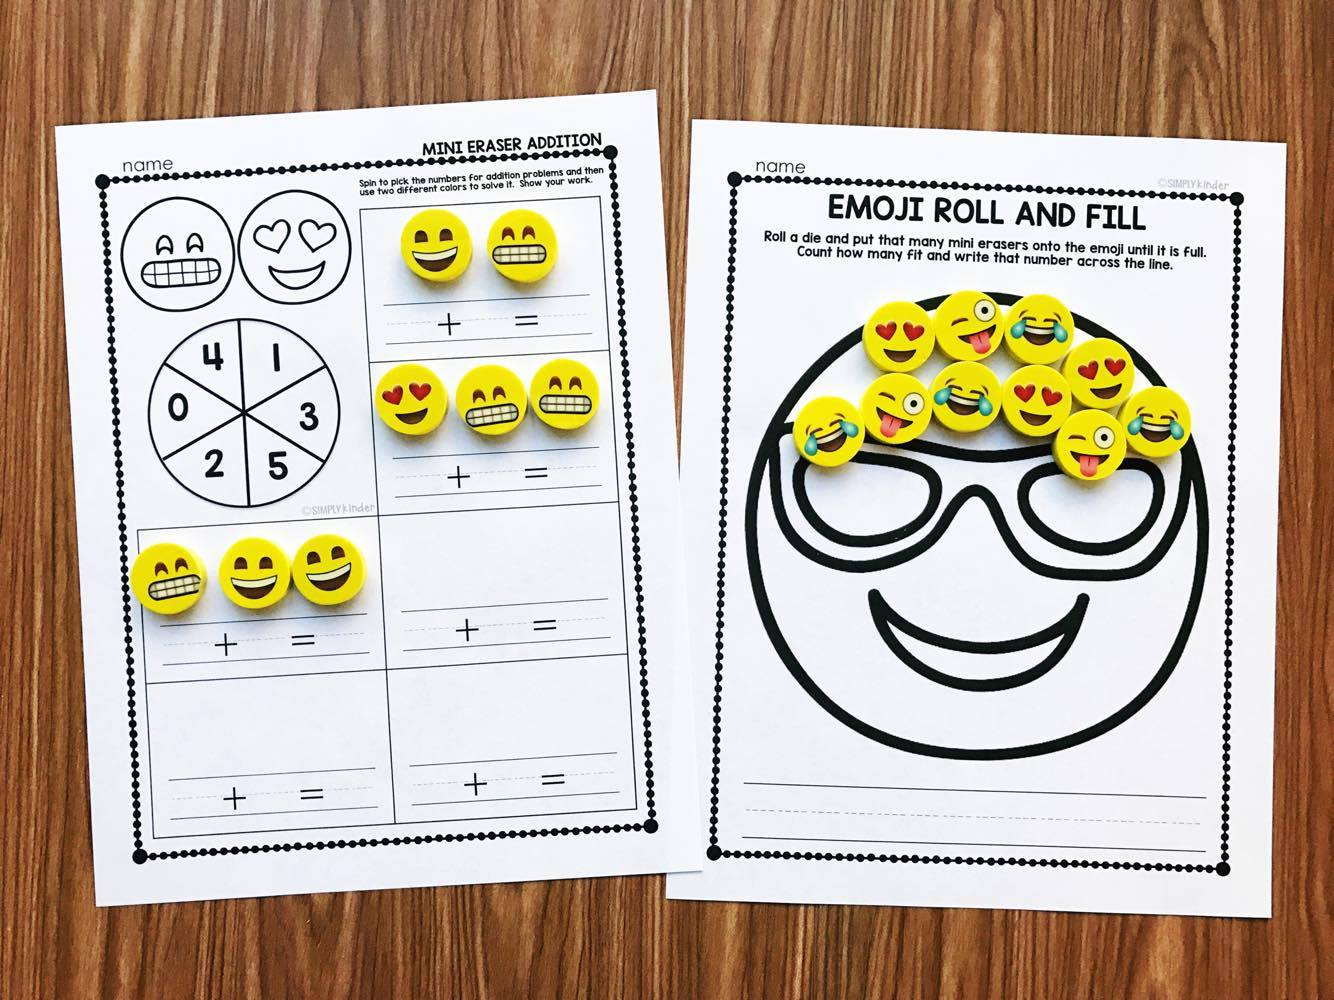 Emoji Mini Eraser Activities from Simply Kinder. These are great for counting, adding, and so much more! Preschool, kindergarten, and first grade all love these activities.